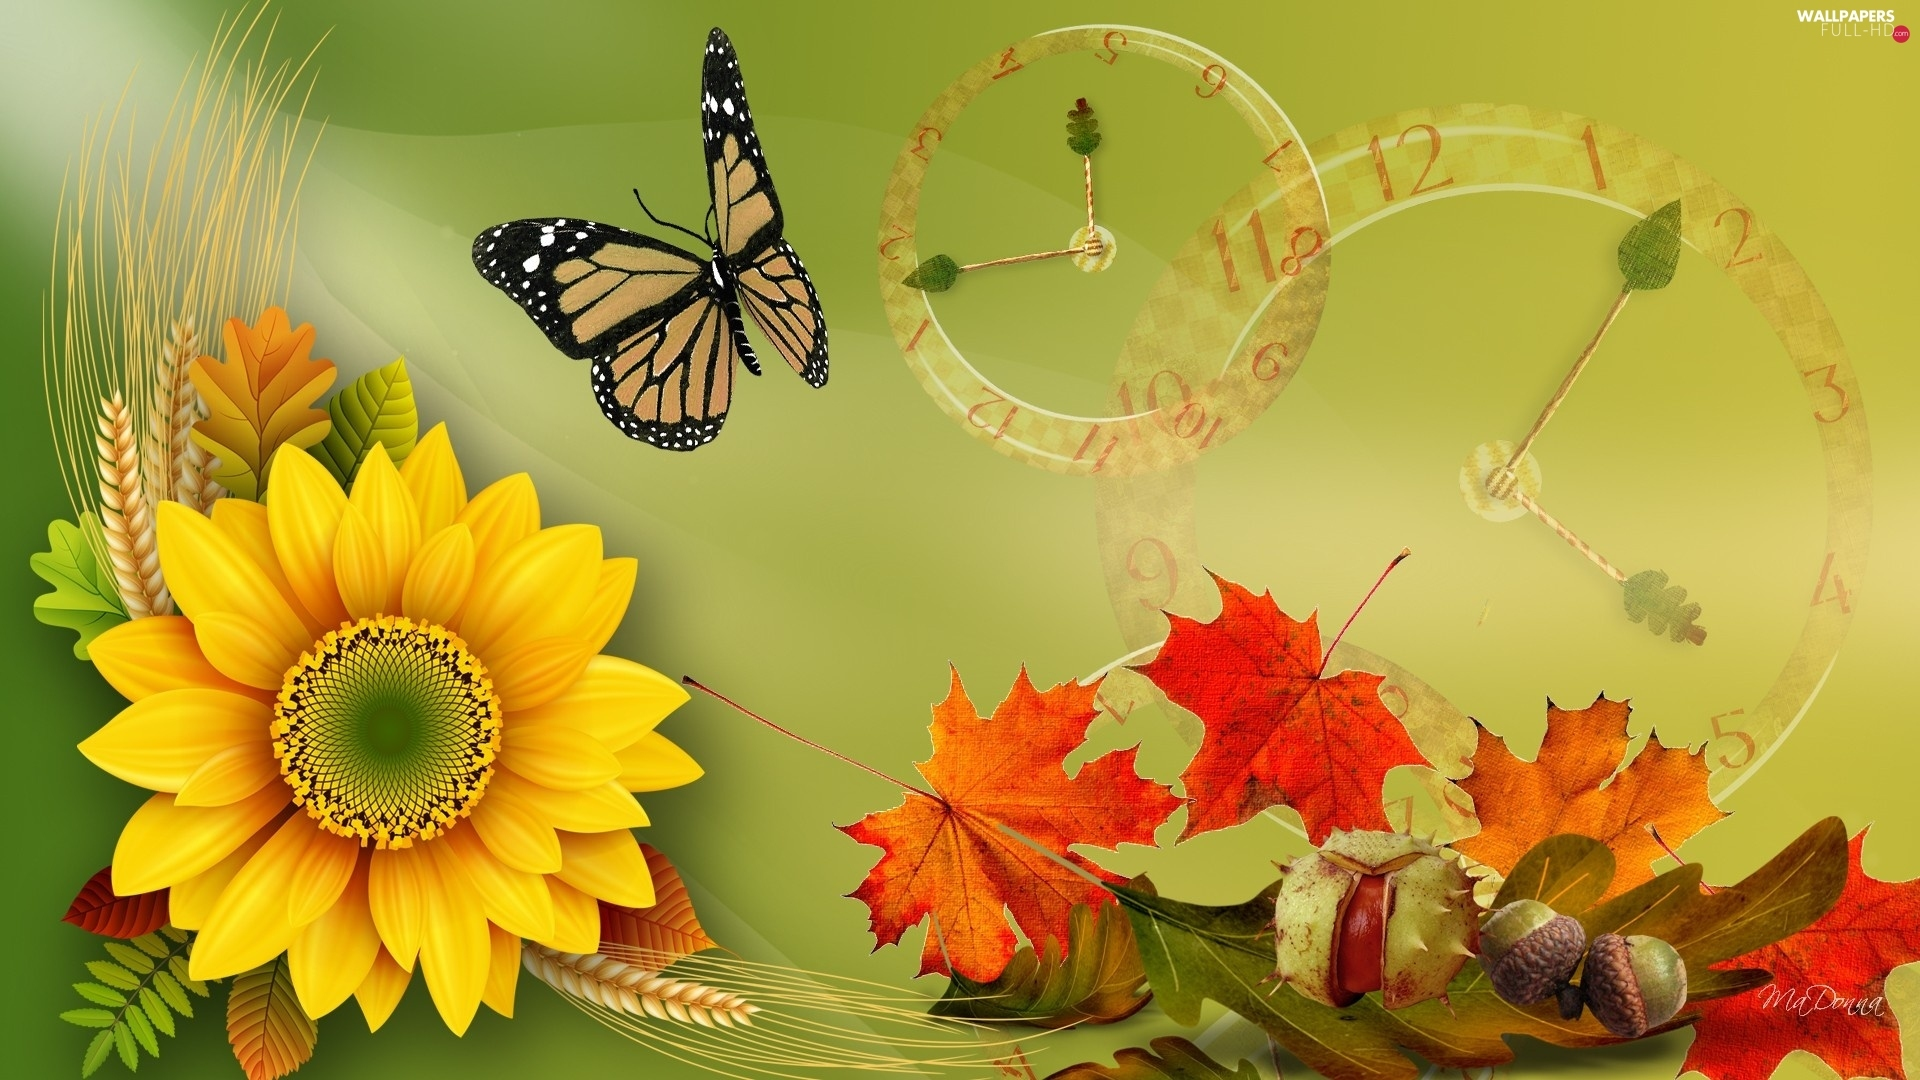 autumn, butterfly, Sunflower, graphics, Leaf